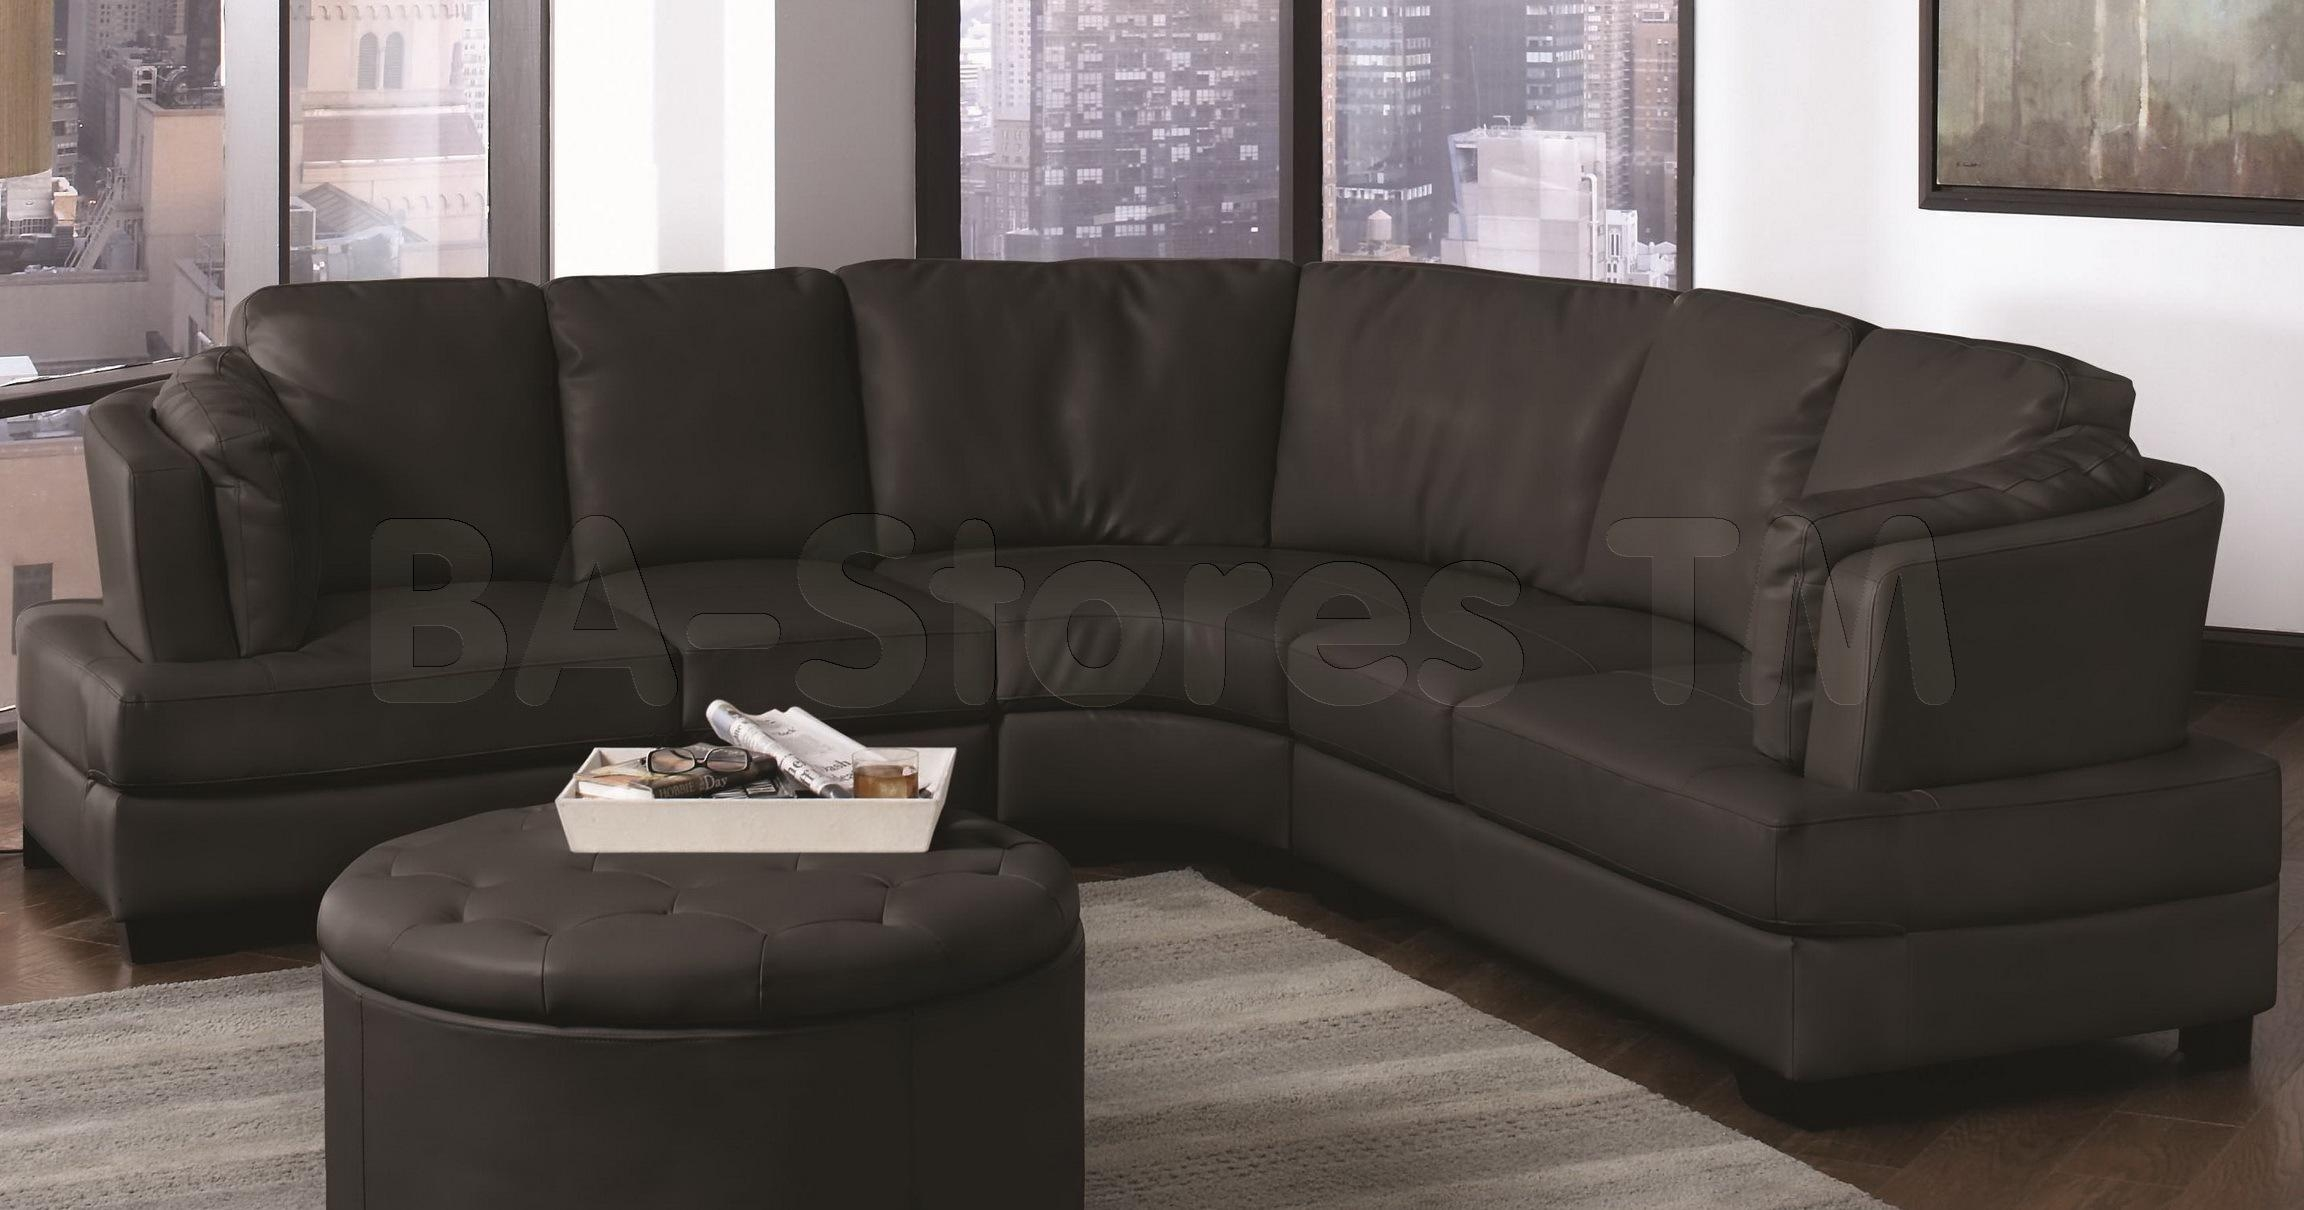 Sofas Center : Rcsectt Jpg Unbelievabled Sectional Sofa Picture Pertaining To Curved Sectional Sofas With Recliner (Image 20 of 20)